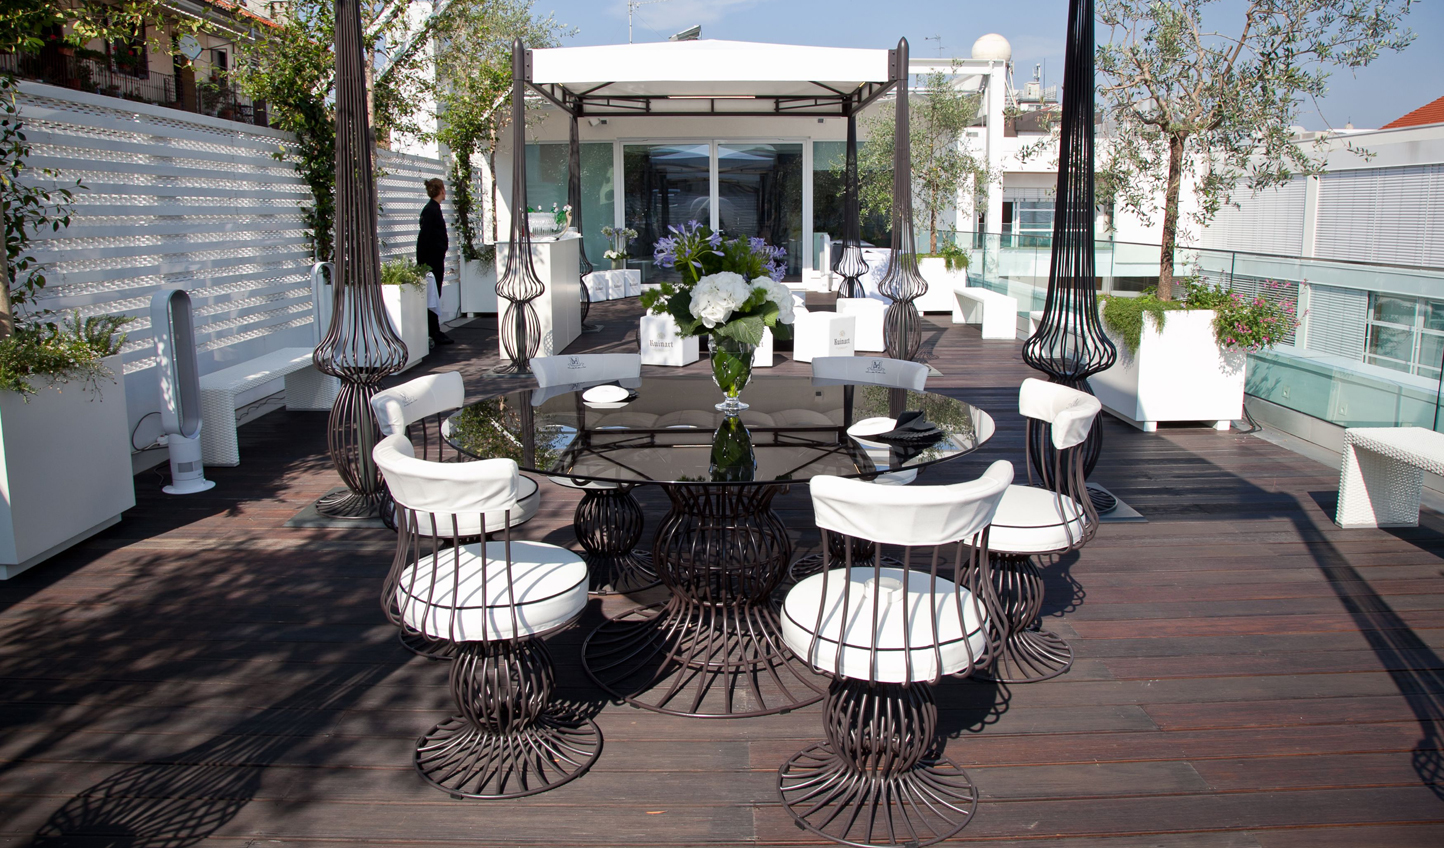 Enjoy an aperitivo up on the roofdeck